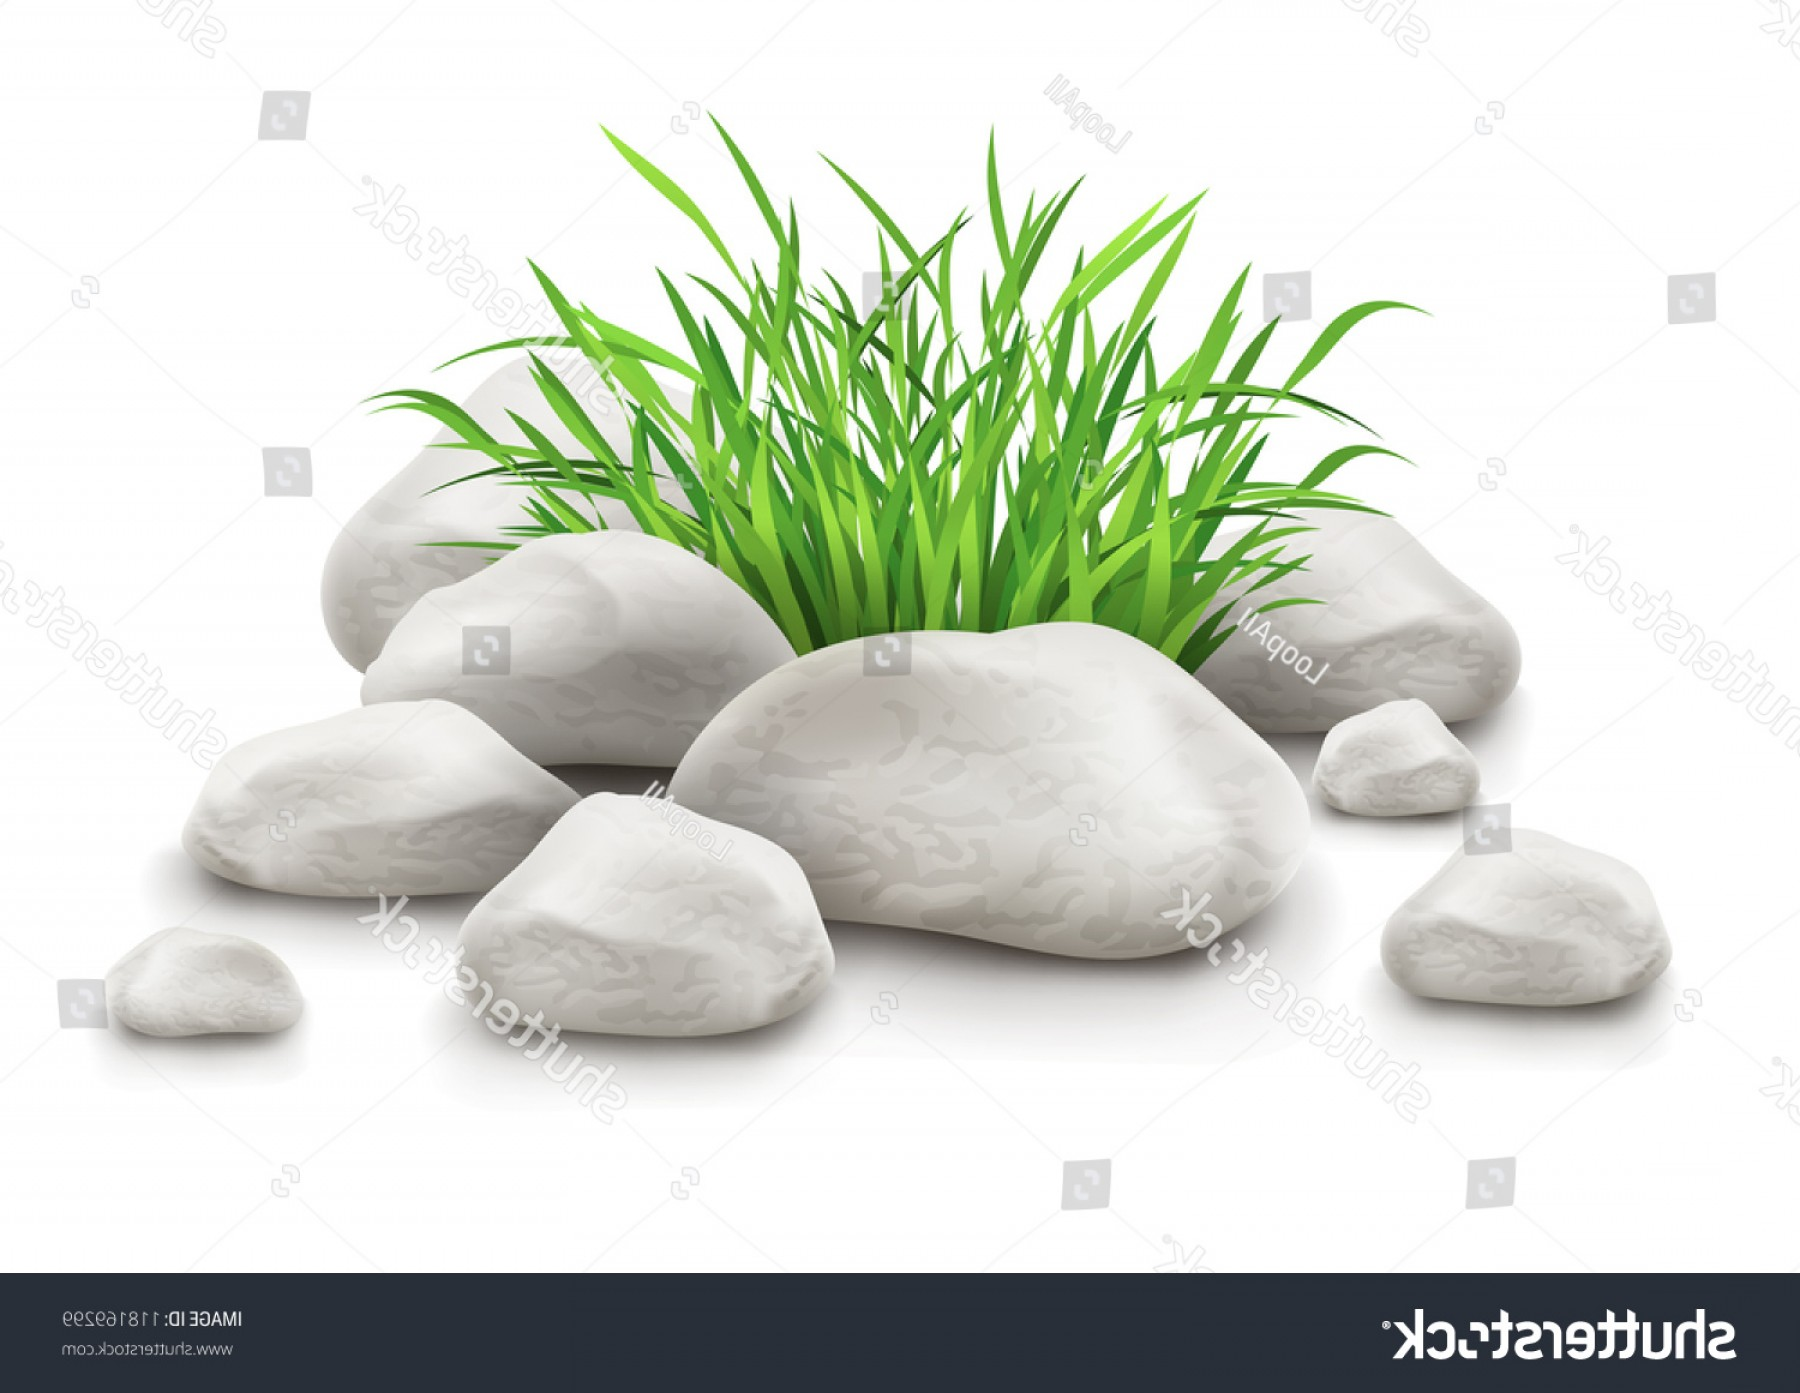 Vector Stone Landscaping: Green Grass Stones Landscape Design Element